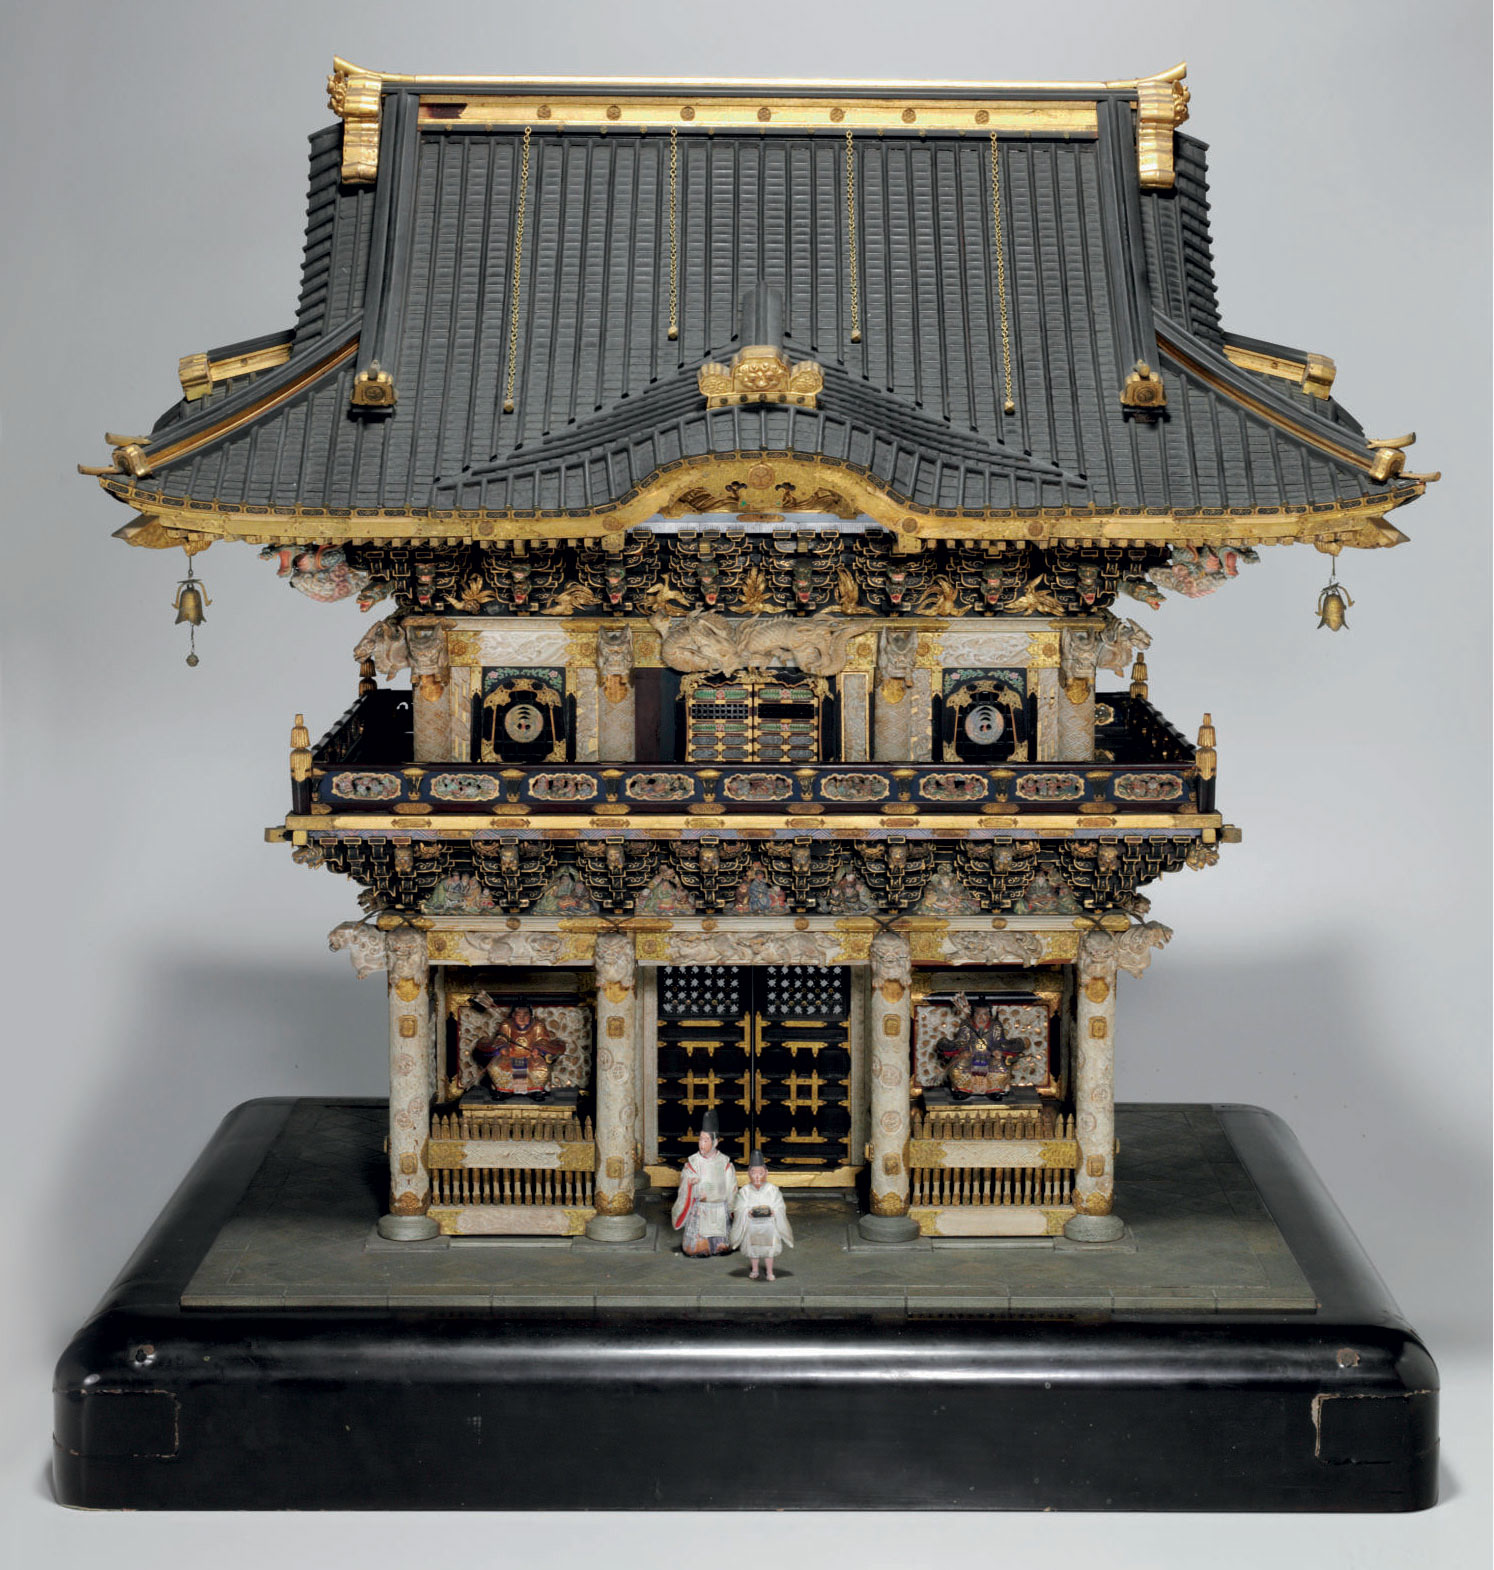 An architectural model of the